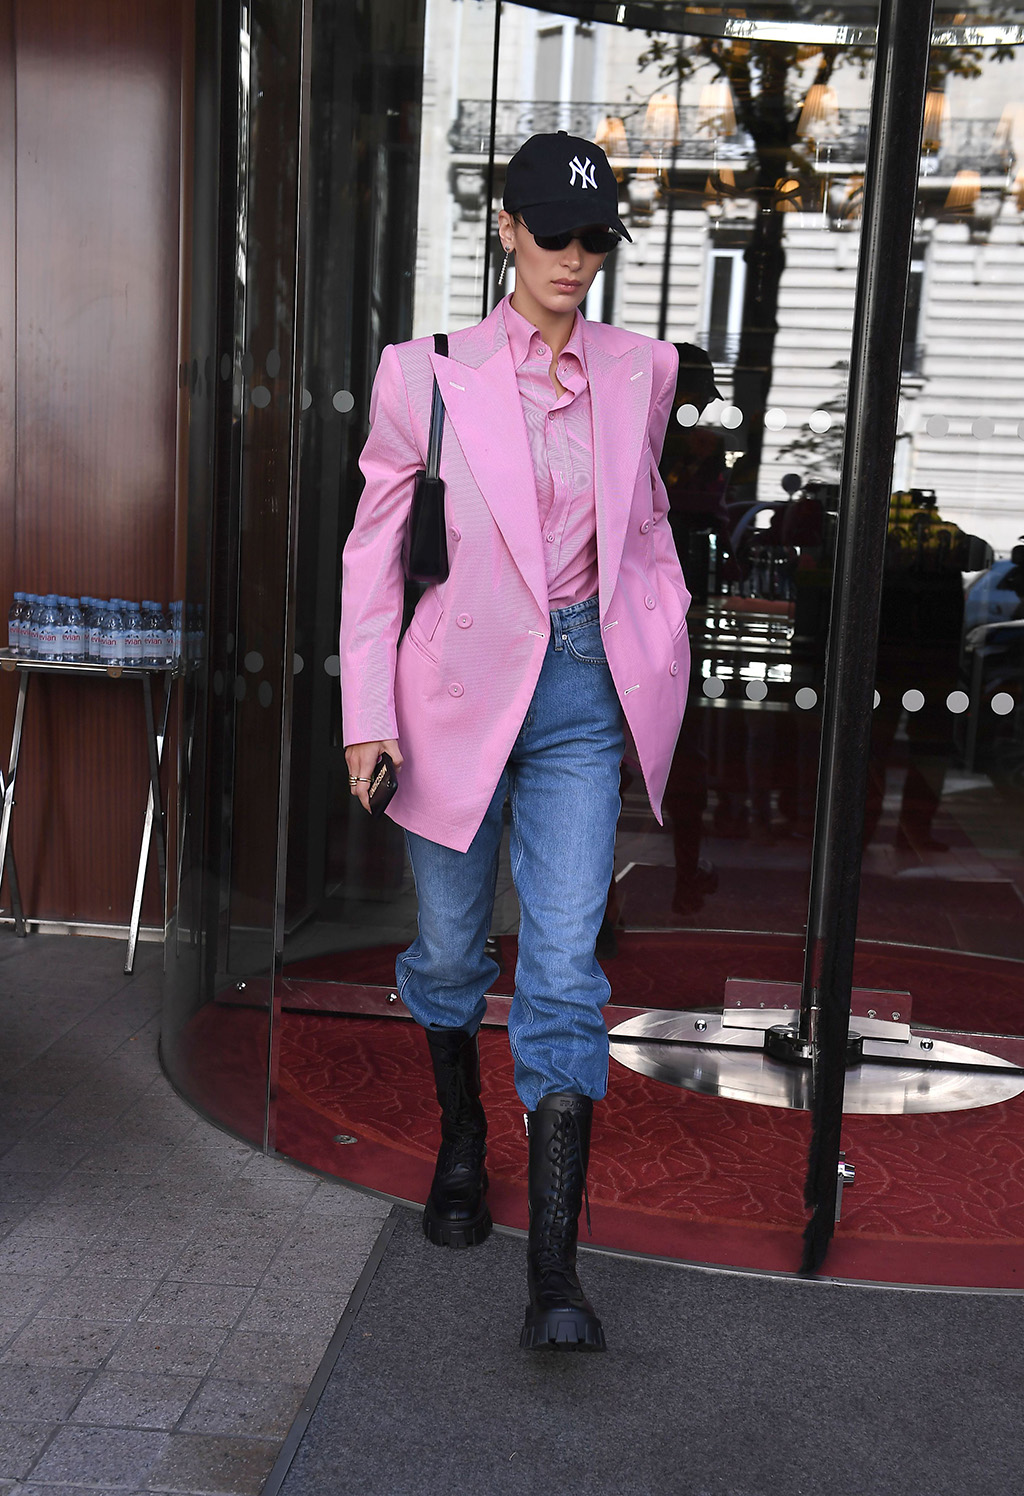 Bella Hadid, pink blazer, button-down shirt, mom jeans, Prada boots, combat boots, celebrity style, street style, New York yankees hat, mini bag, model off duty, Bella Hadid out and about, Paris Fashion Week, France - 30 Sep 2019